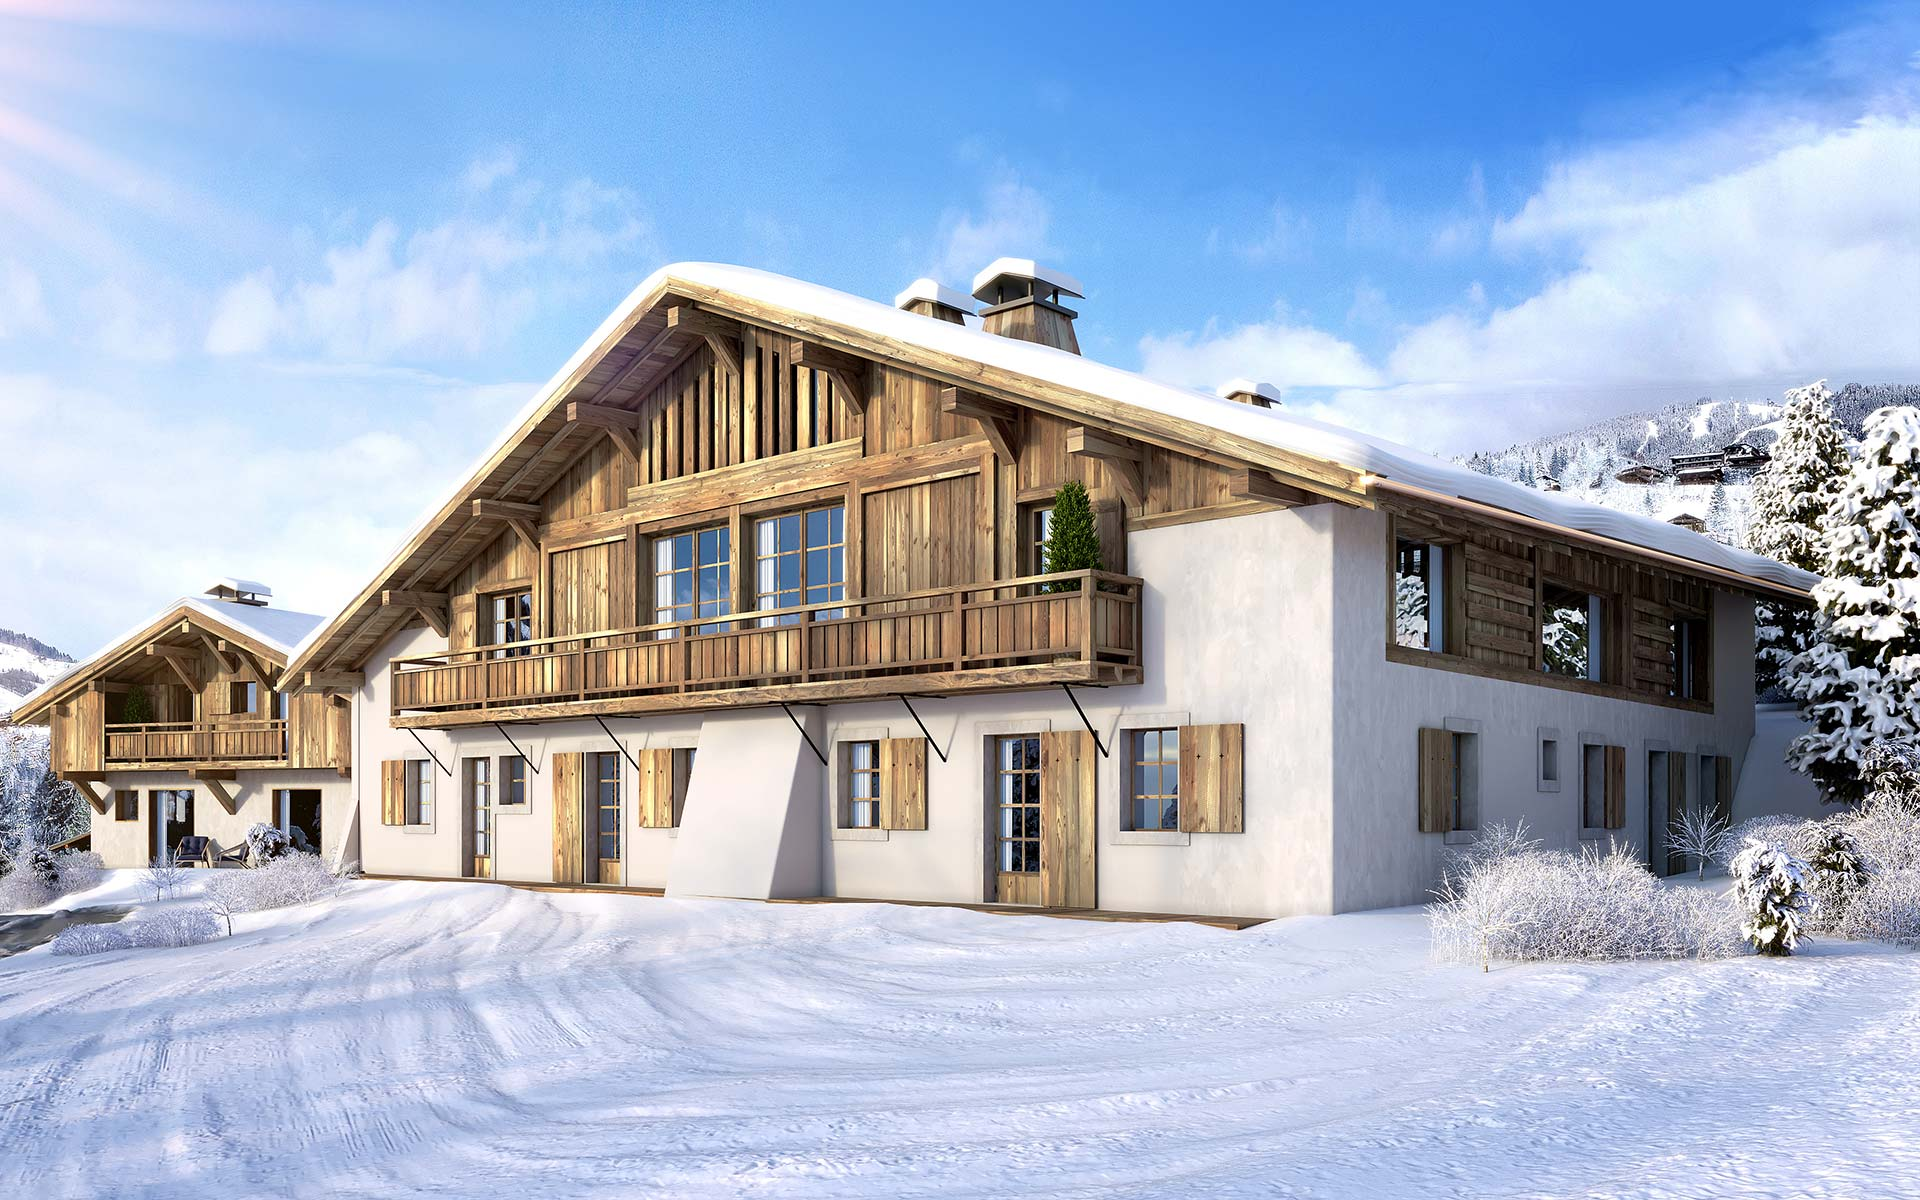 3D visual of the exterior of a chalet in Megève